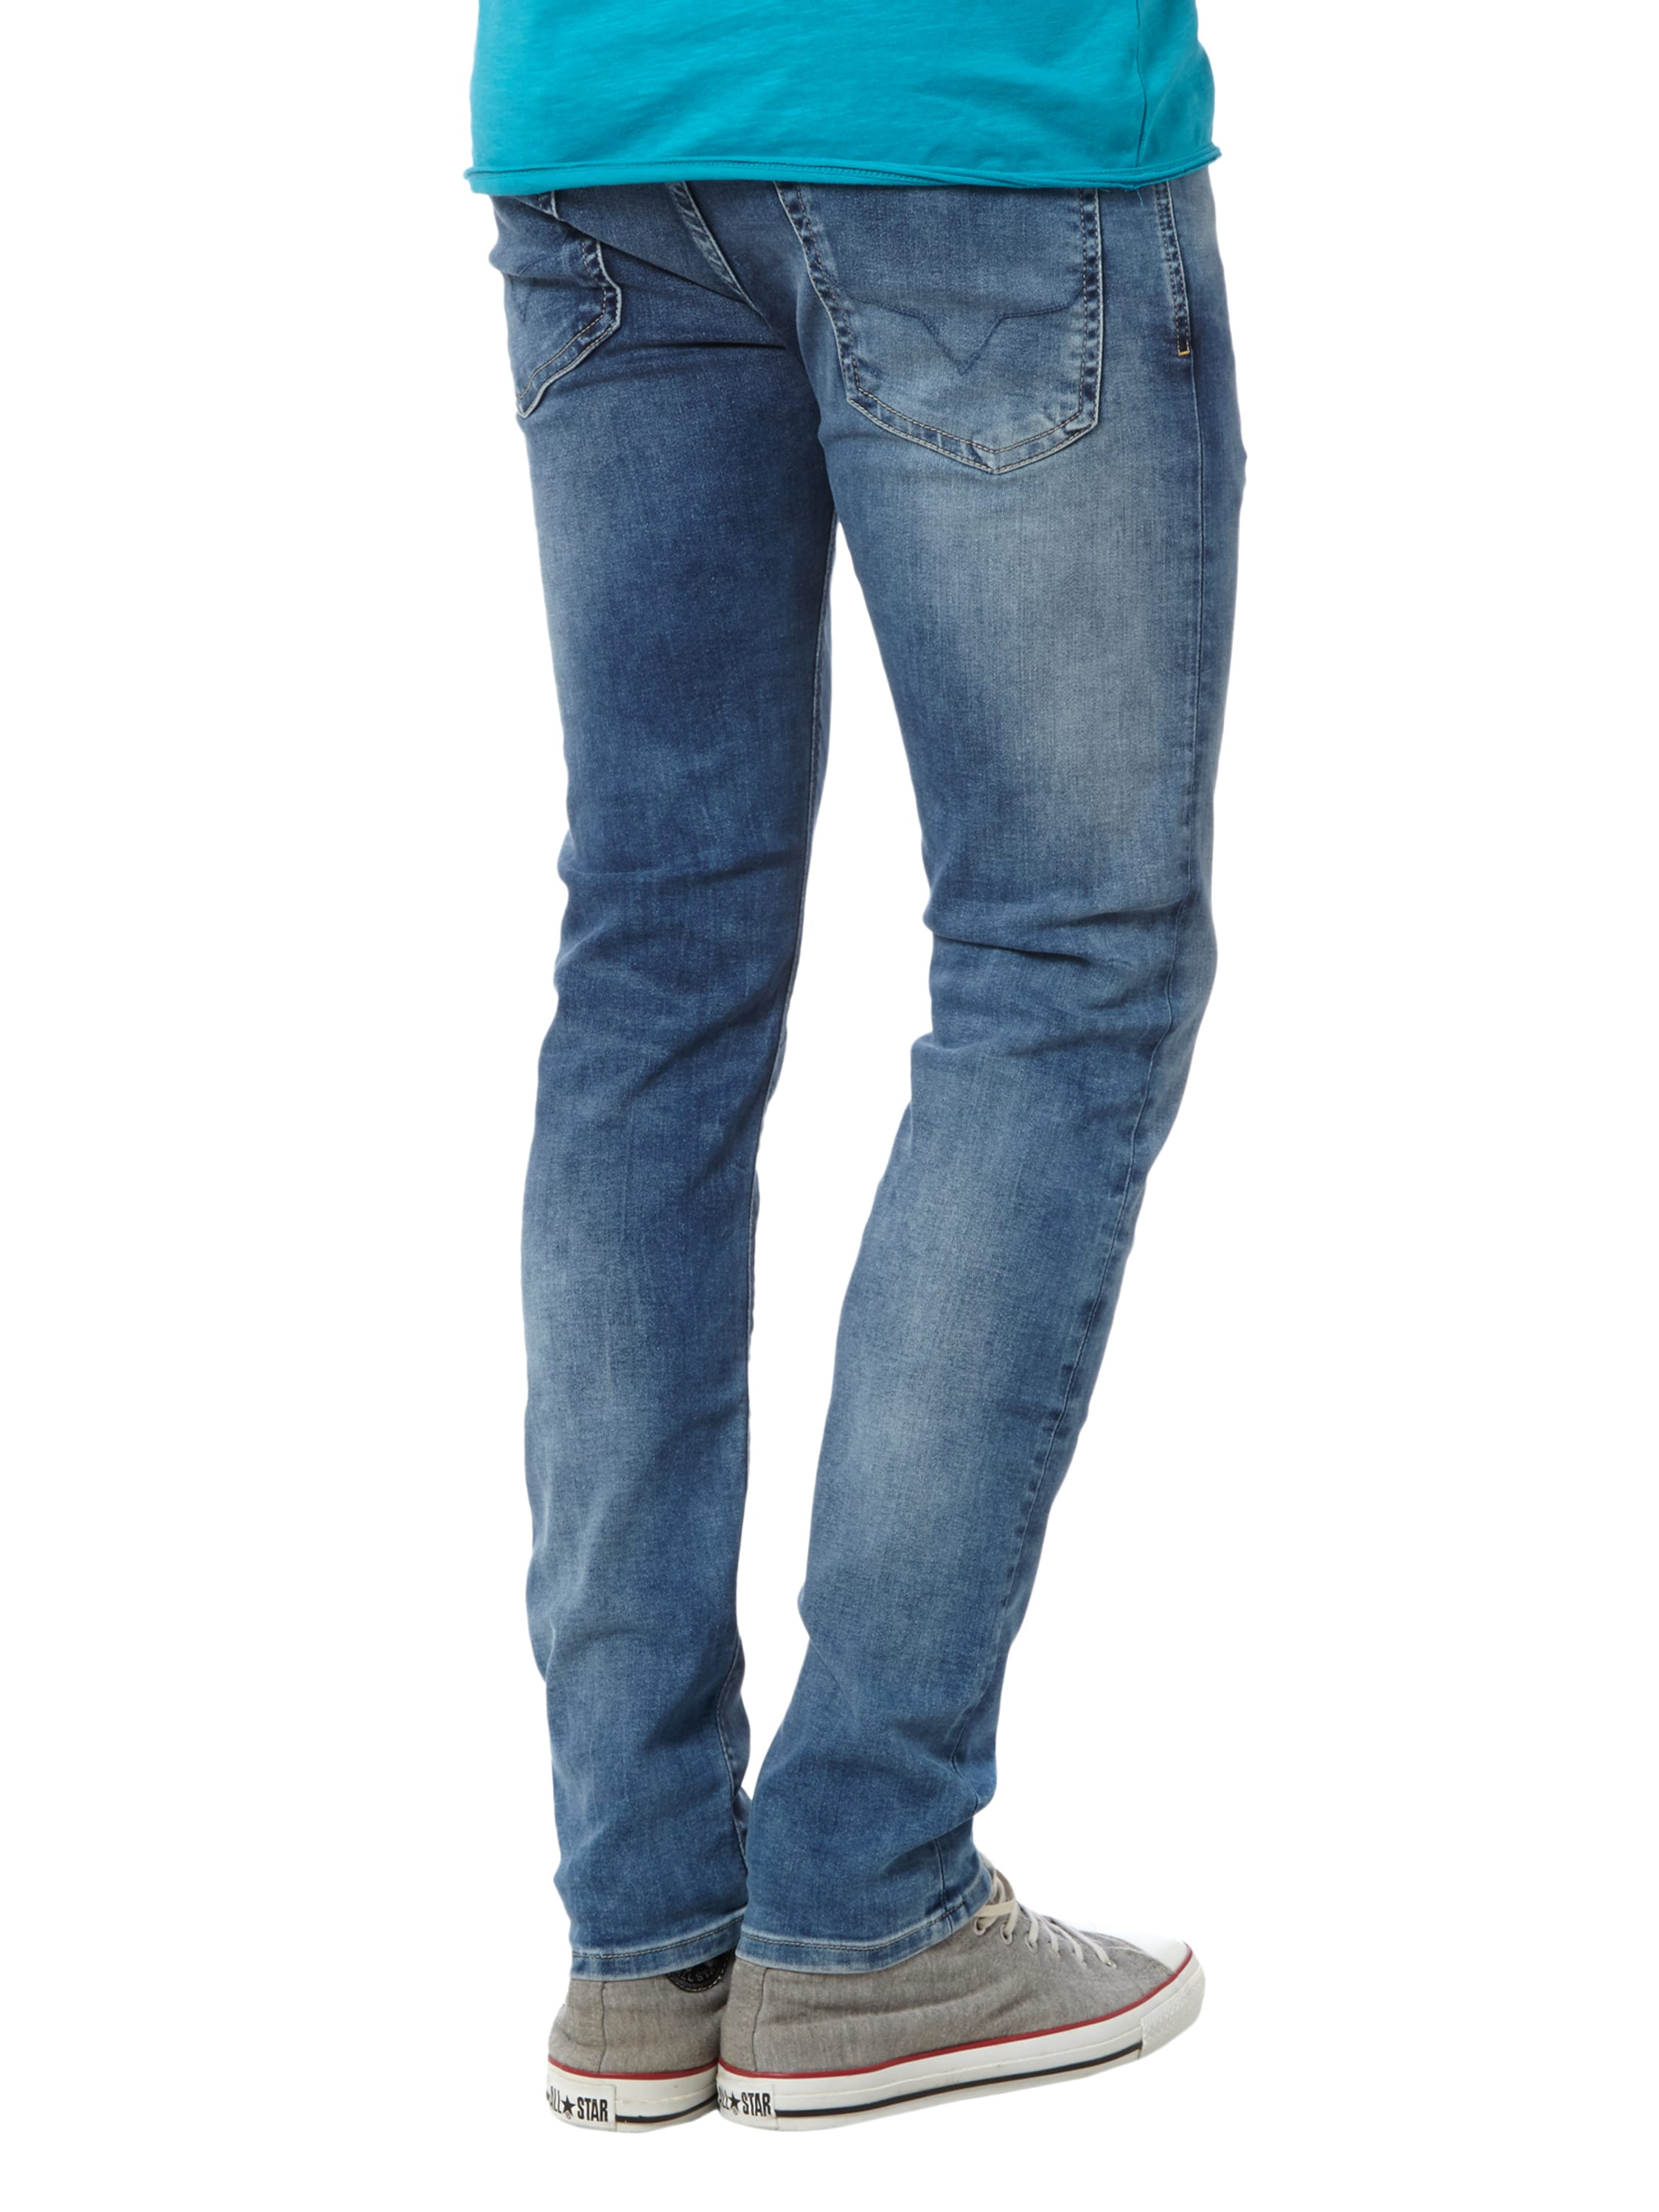 pepe jeans slim fit low waist jeans im stone washed look. Black Bedroom Furniture Sets. Home Design Ideas